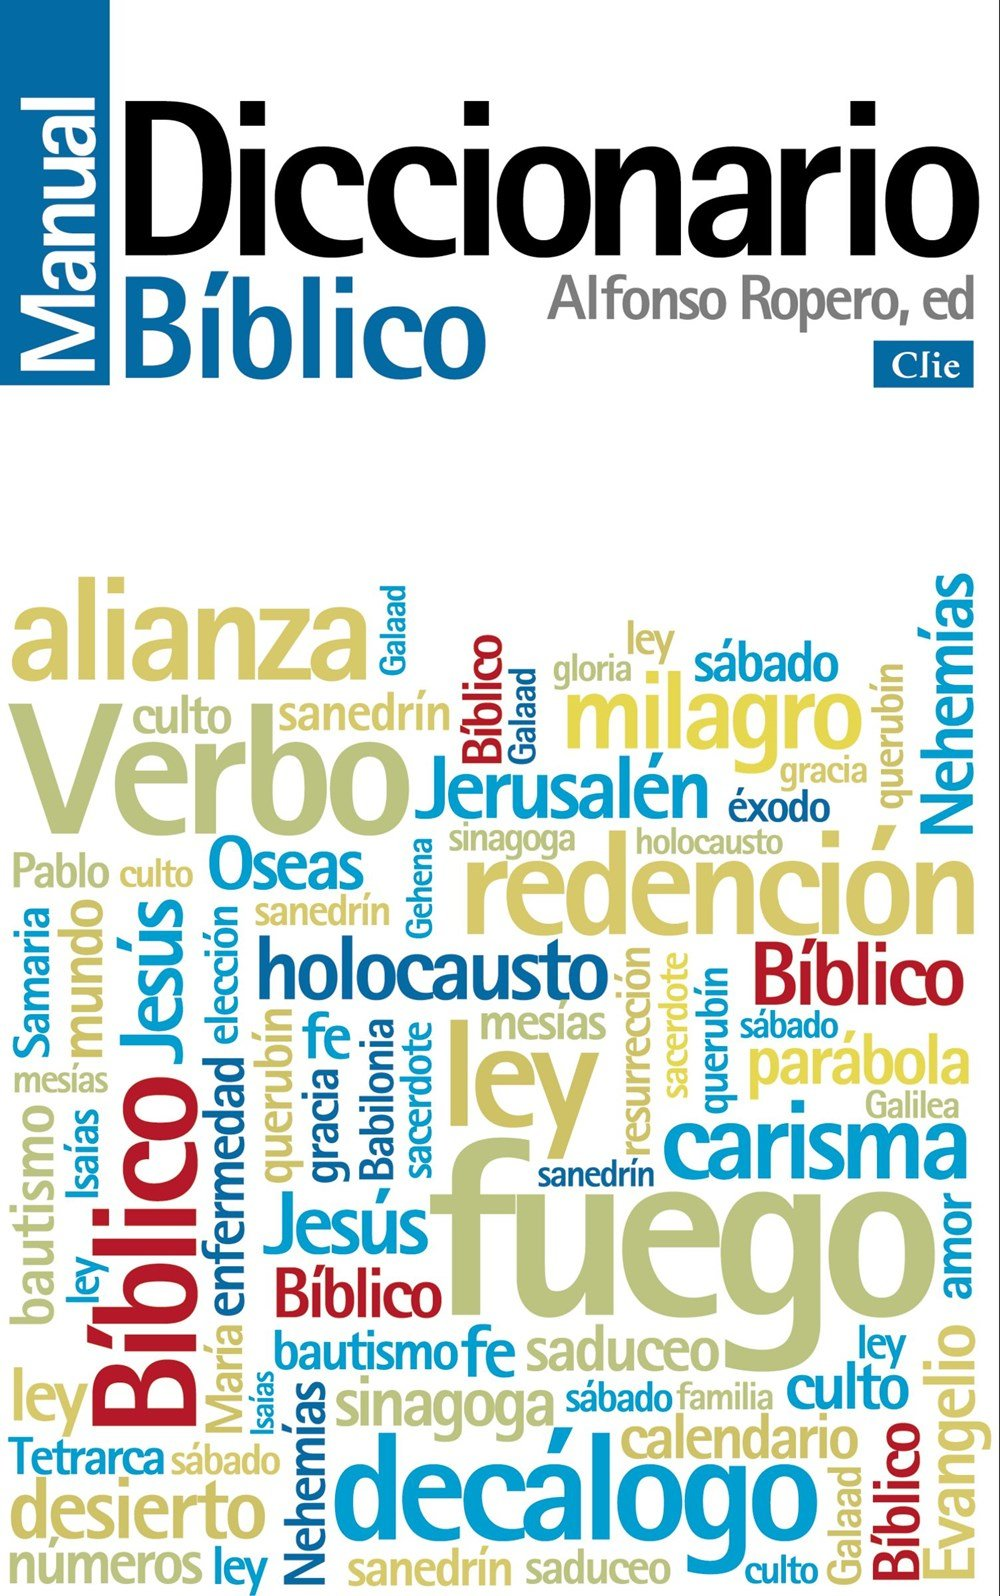 Diccionario manual bíblico (Spanish Edition)